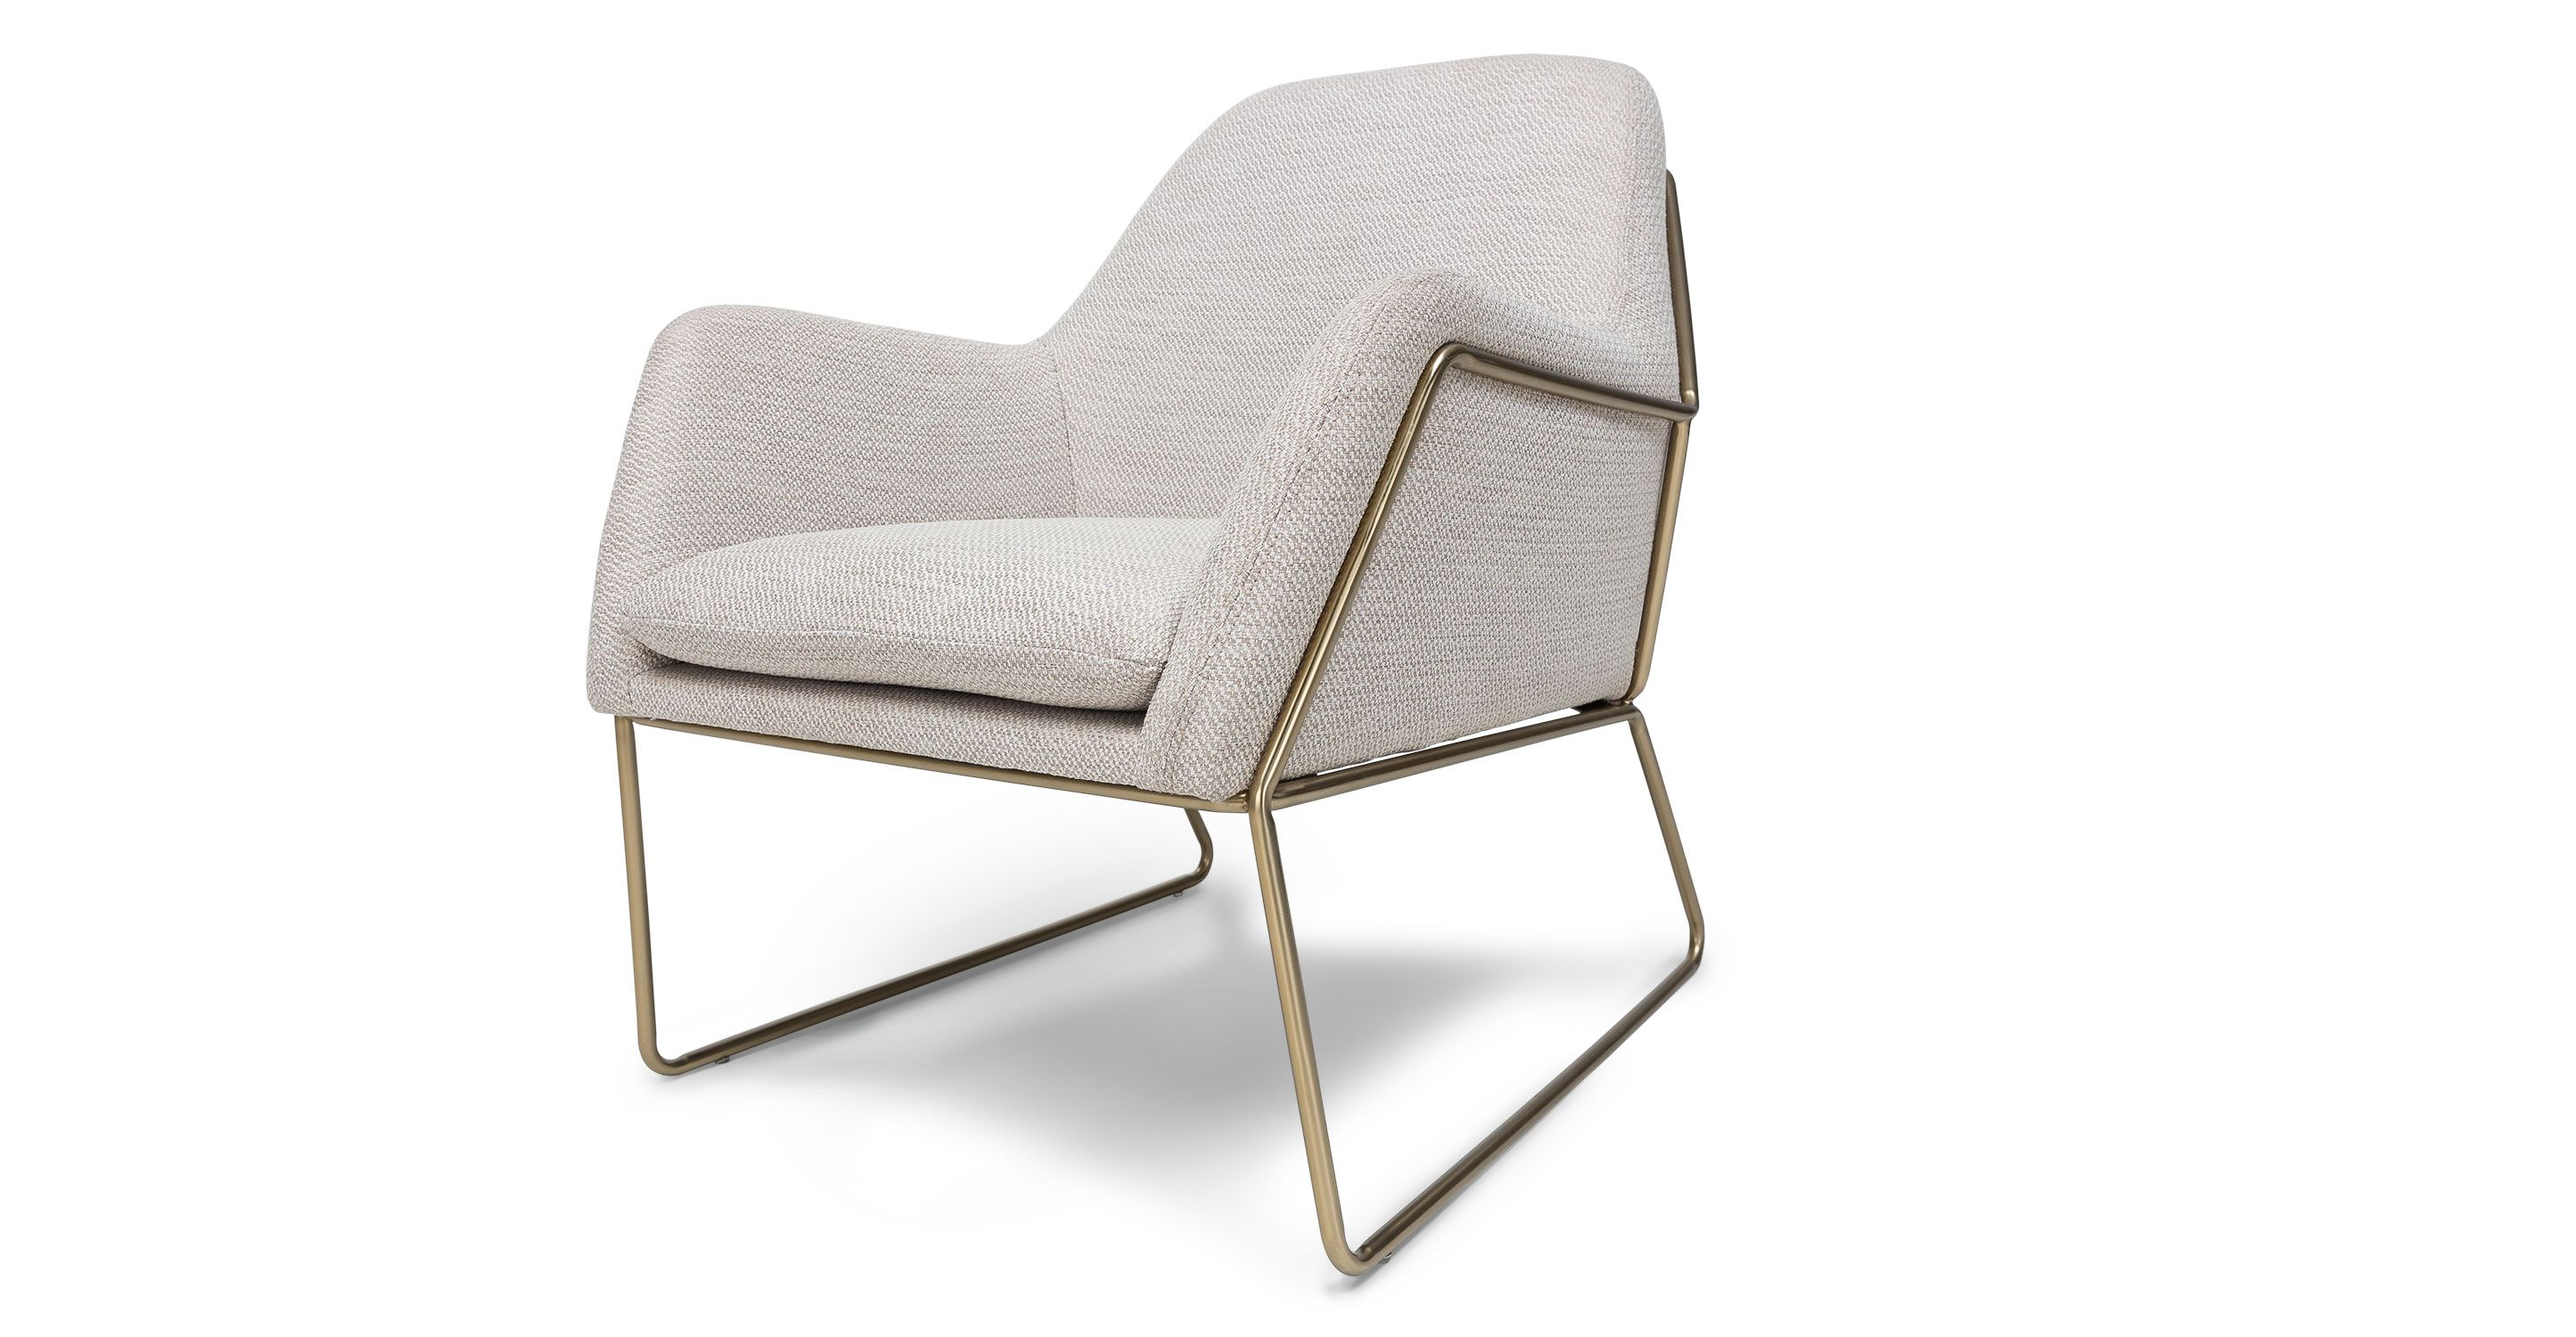 contemporary scandinavian furniture. Forma Milkyway Ivory Chair Contemporary Scandinavian Furniture N